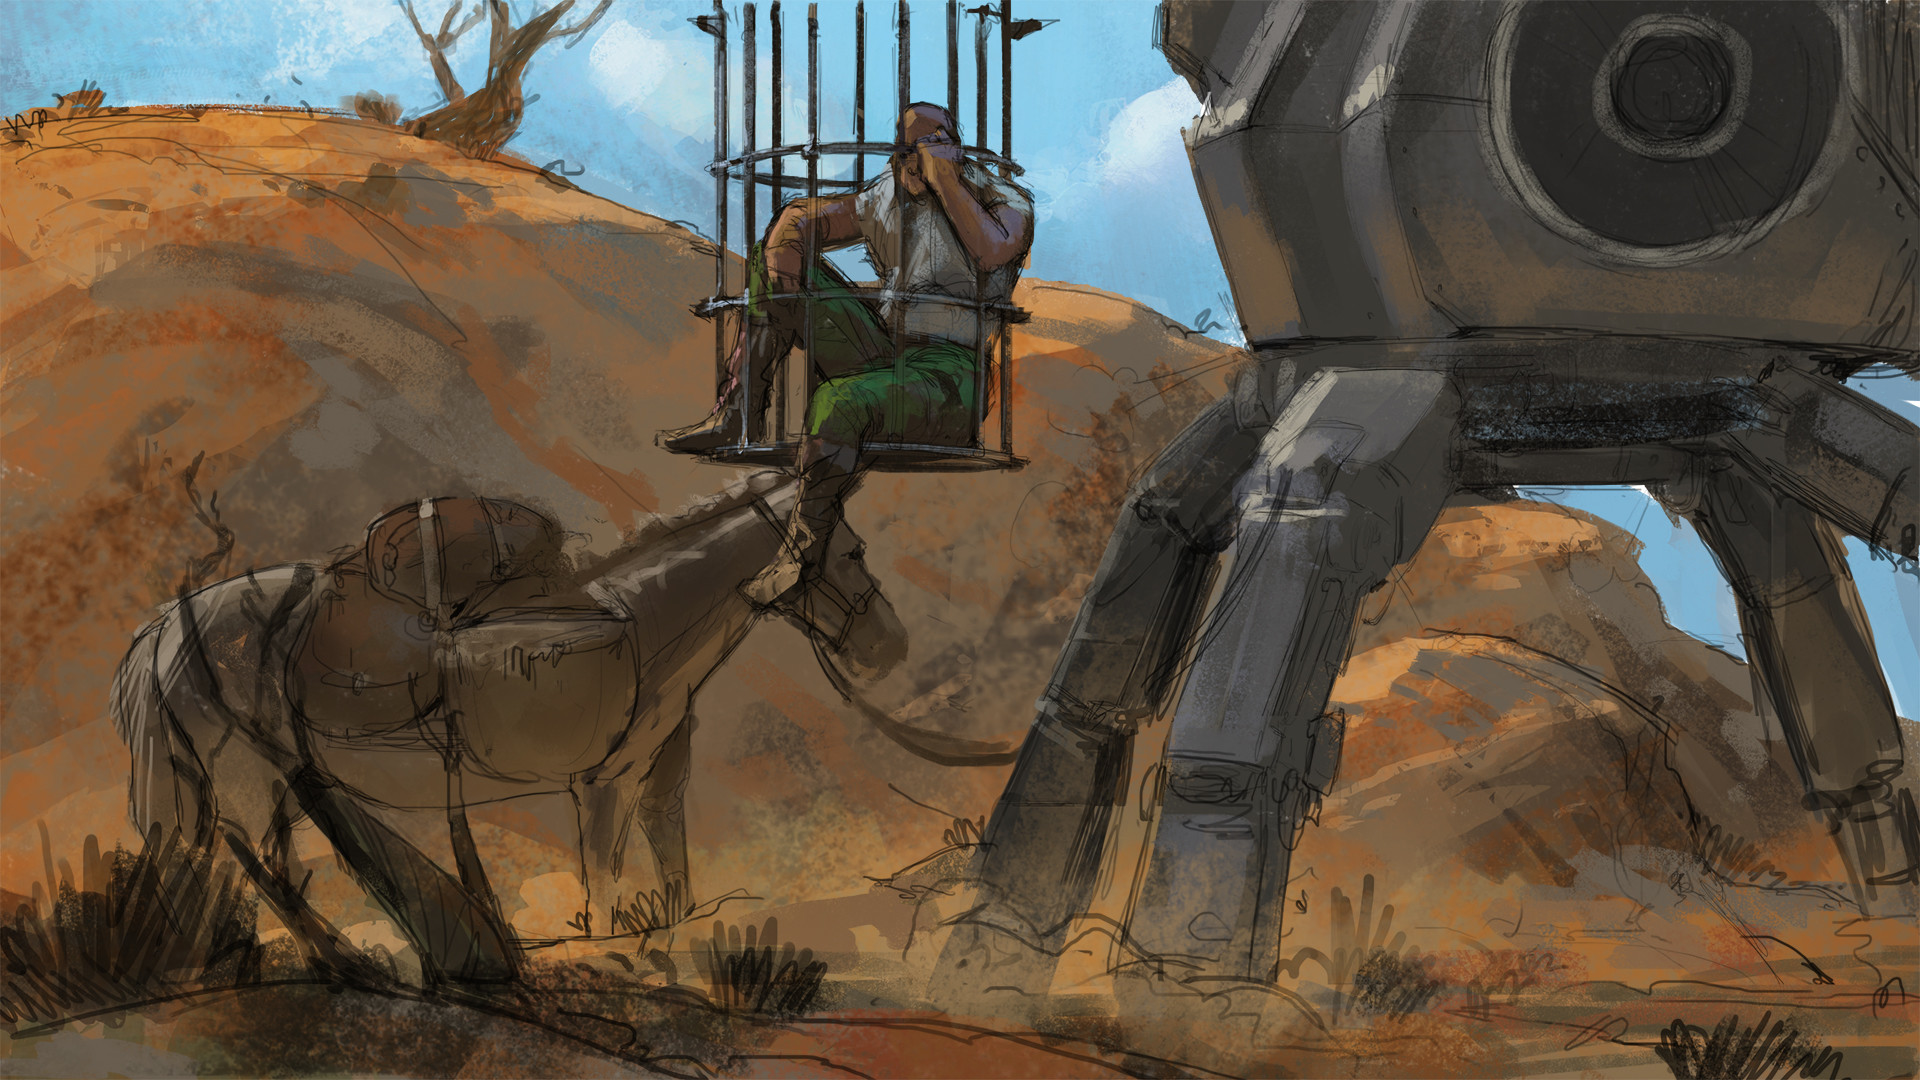 Klaus pillon cage mech imgar sketch 01